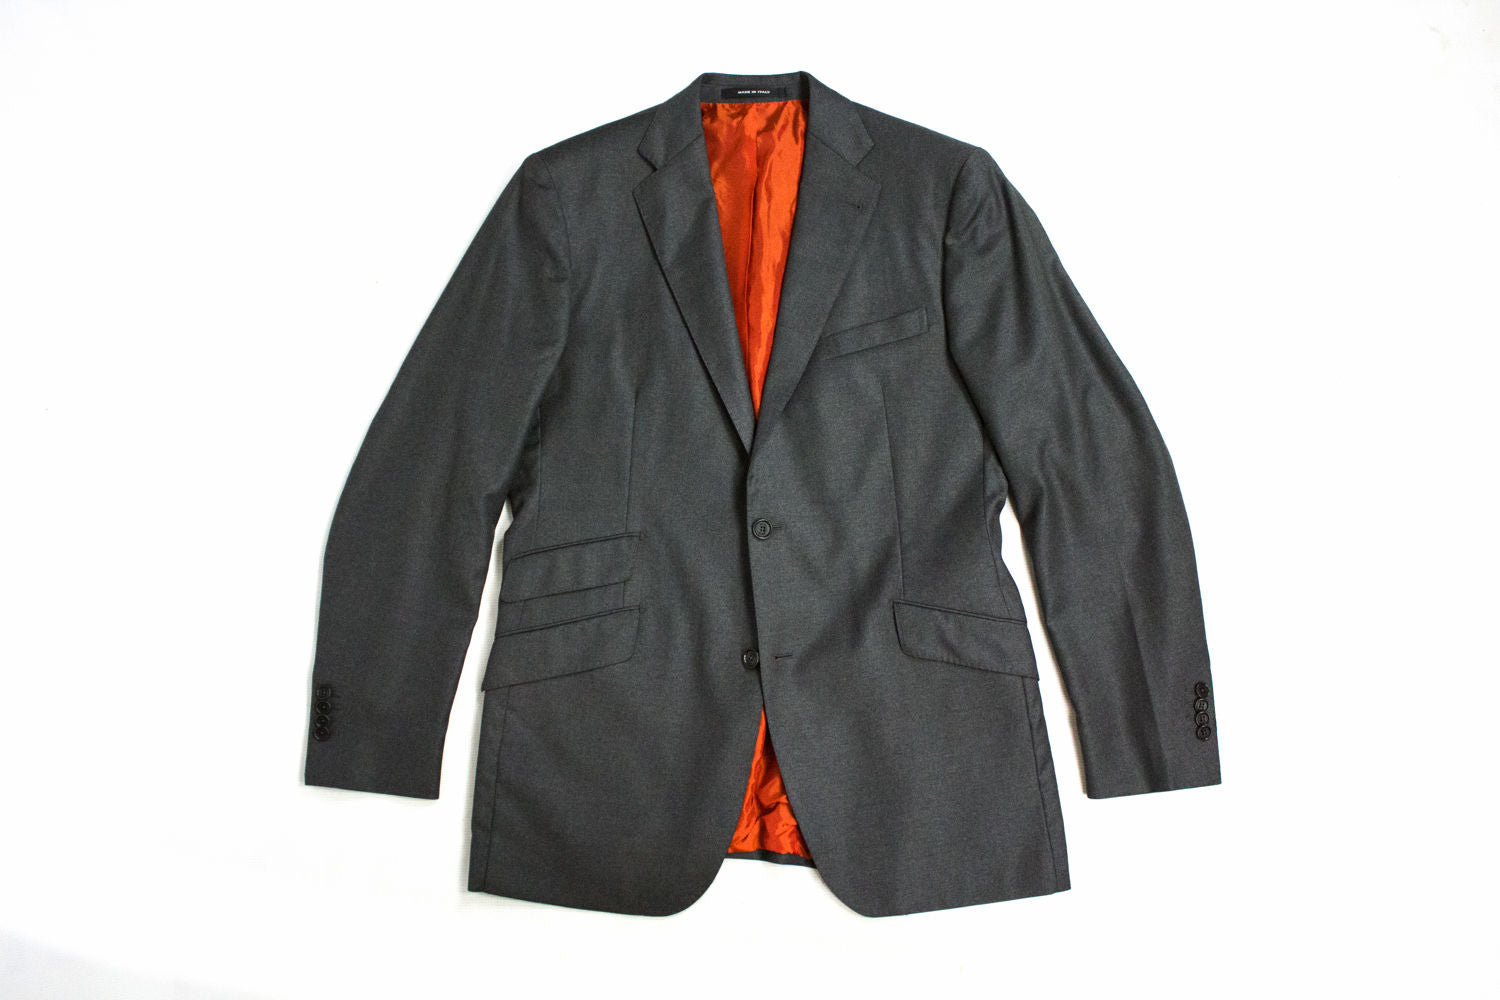 Rose & Born Loro Piana Wool Gray Blazer Jacket, US 40L, EU 50L - secondfirst